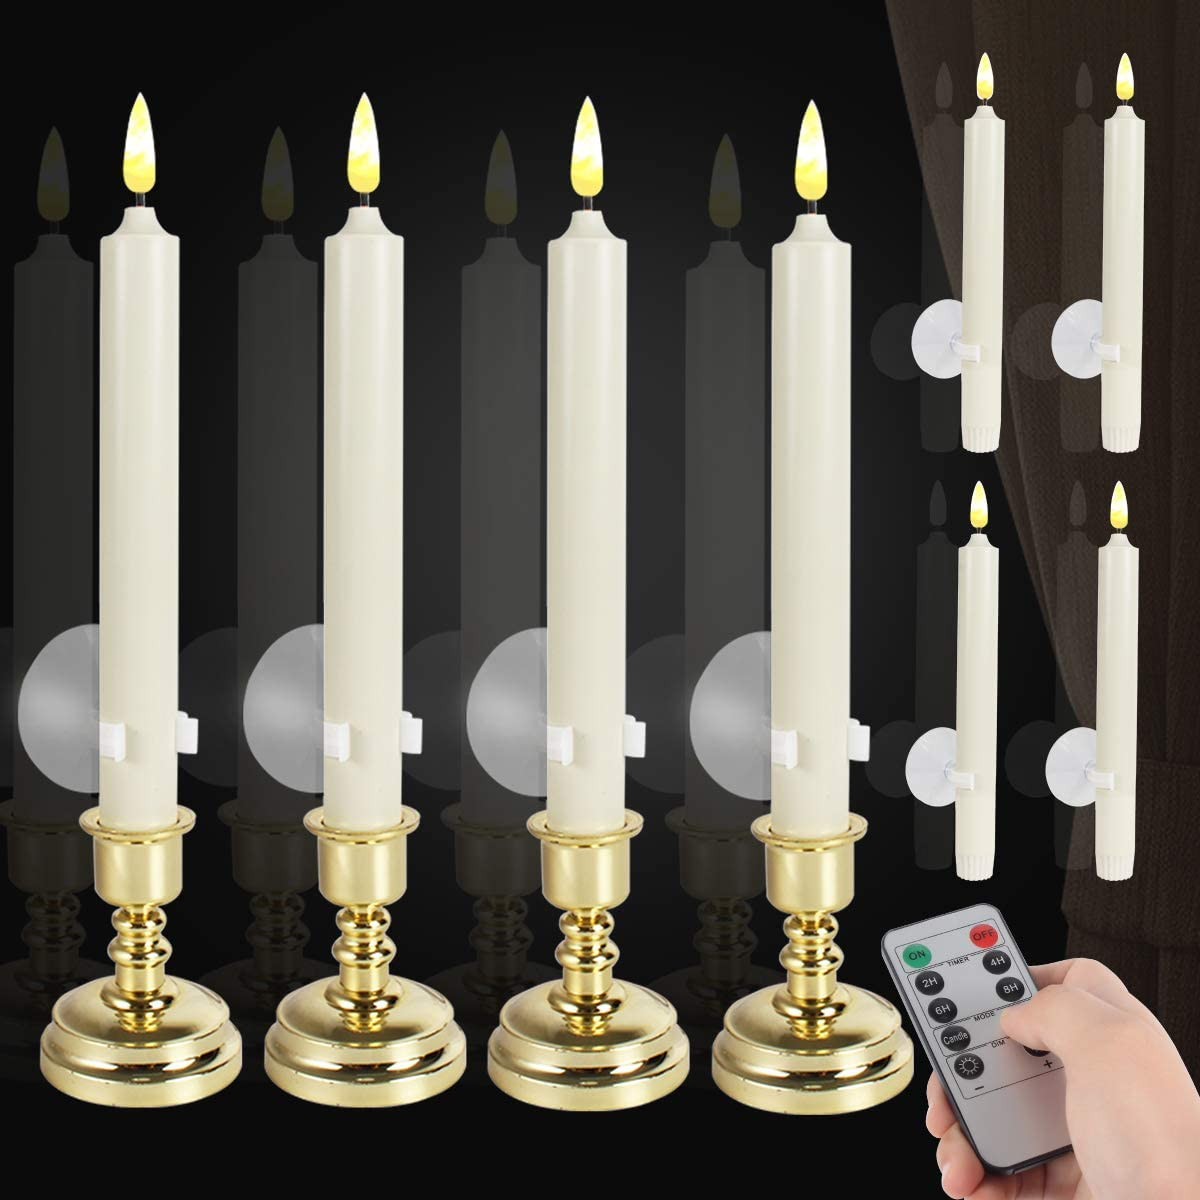 8 Pack Flameless Window Candles Set. with 8 Clips+8 Suction Cup+8 Golden Candleholders. Battery Powered Ivory LED Taper Candles with Remote Timer & Candlestick for Windows Christmas Decor